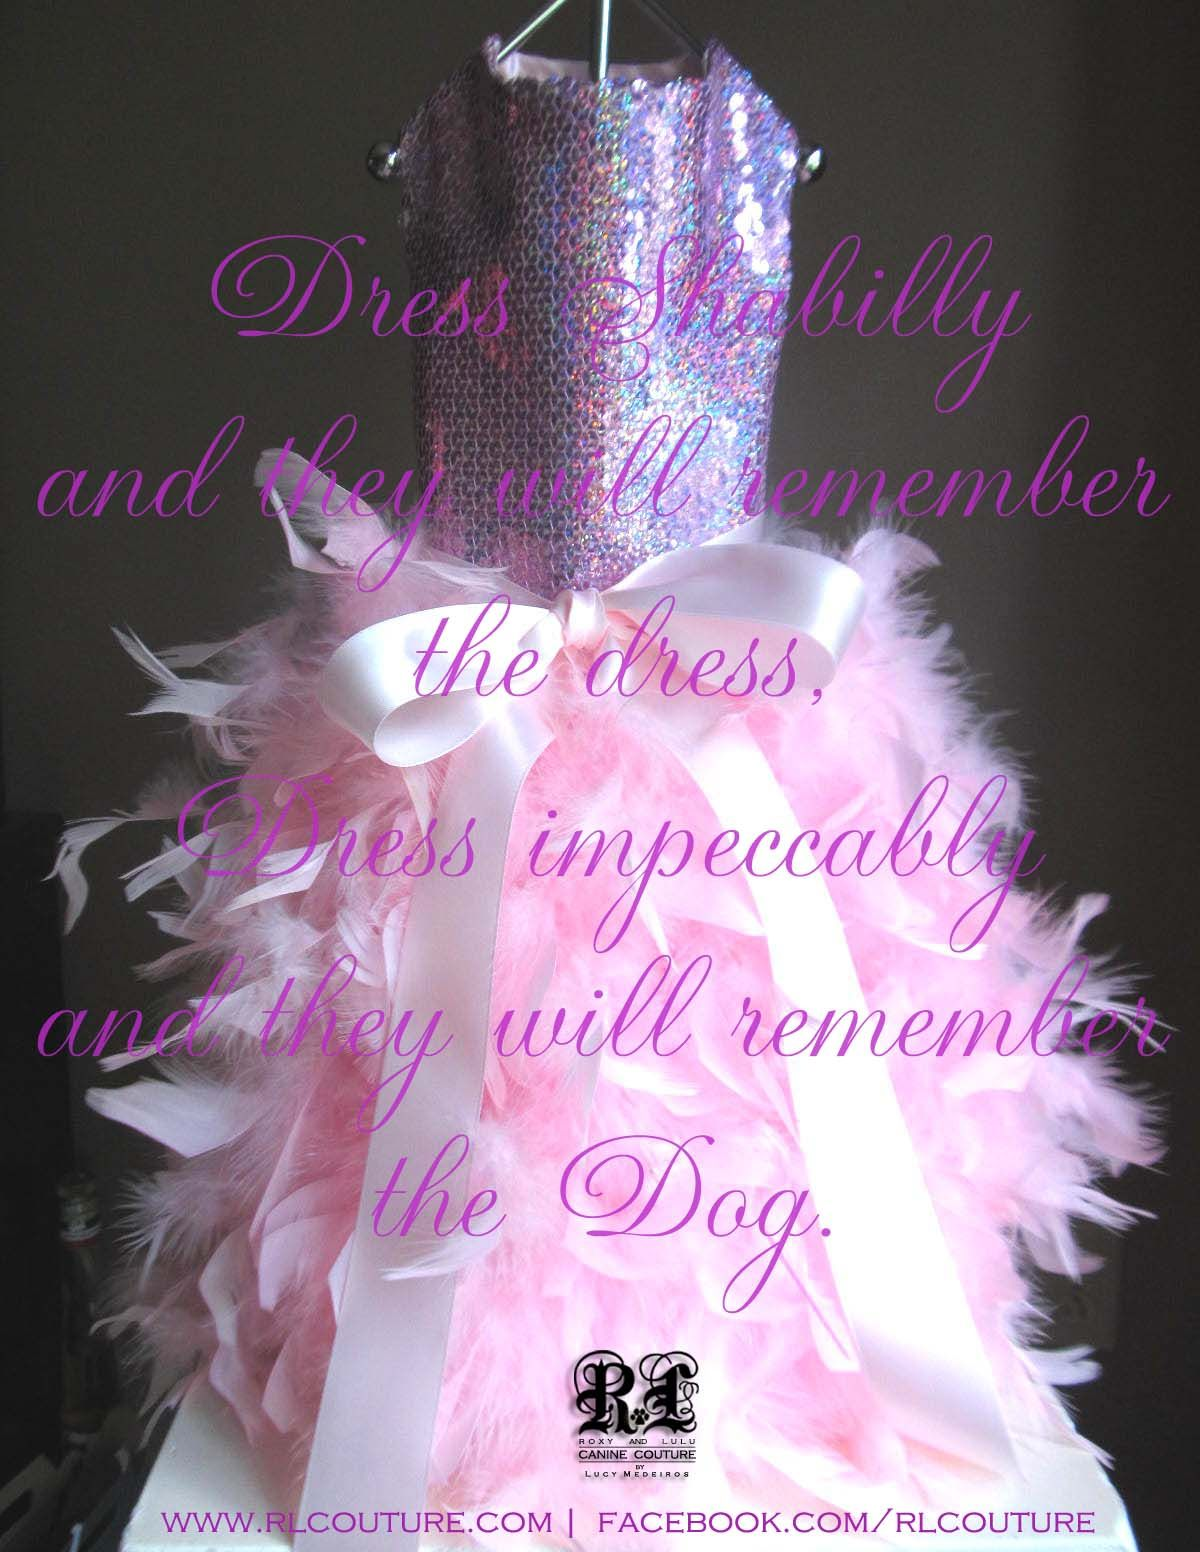 Dress shabilly and they will remember the dress. Dress impeccably and the will remember the Dog. www.lucymedeiros.com